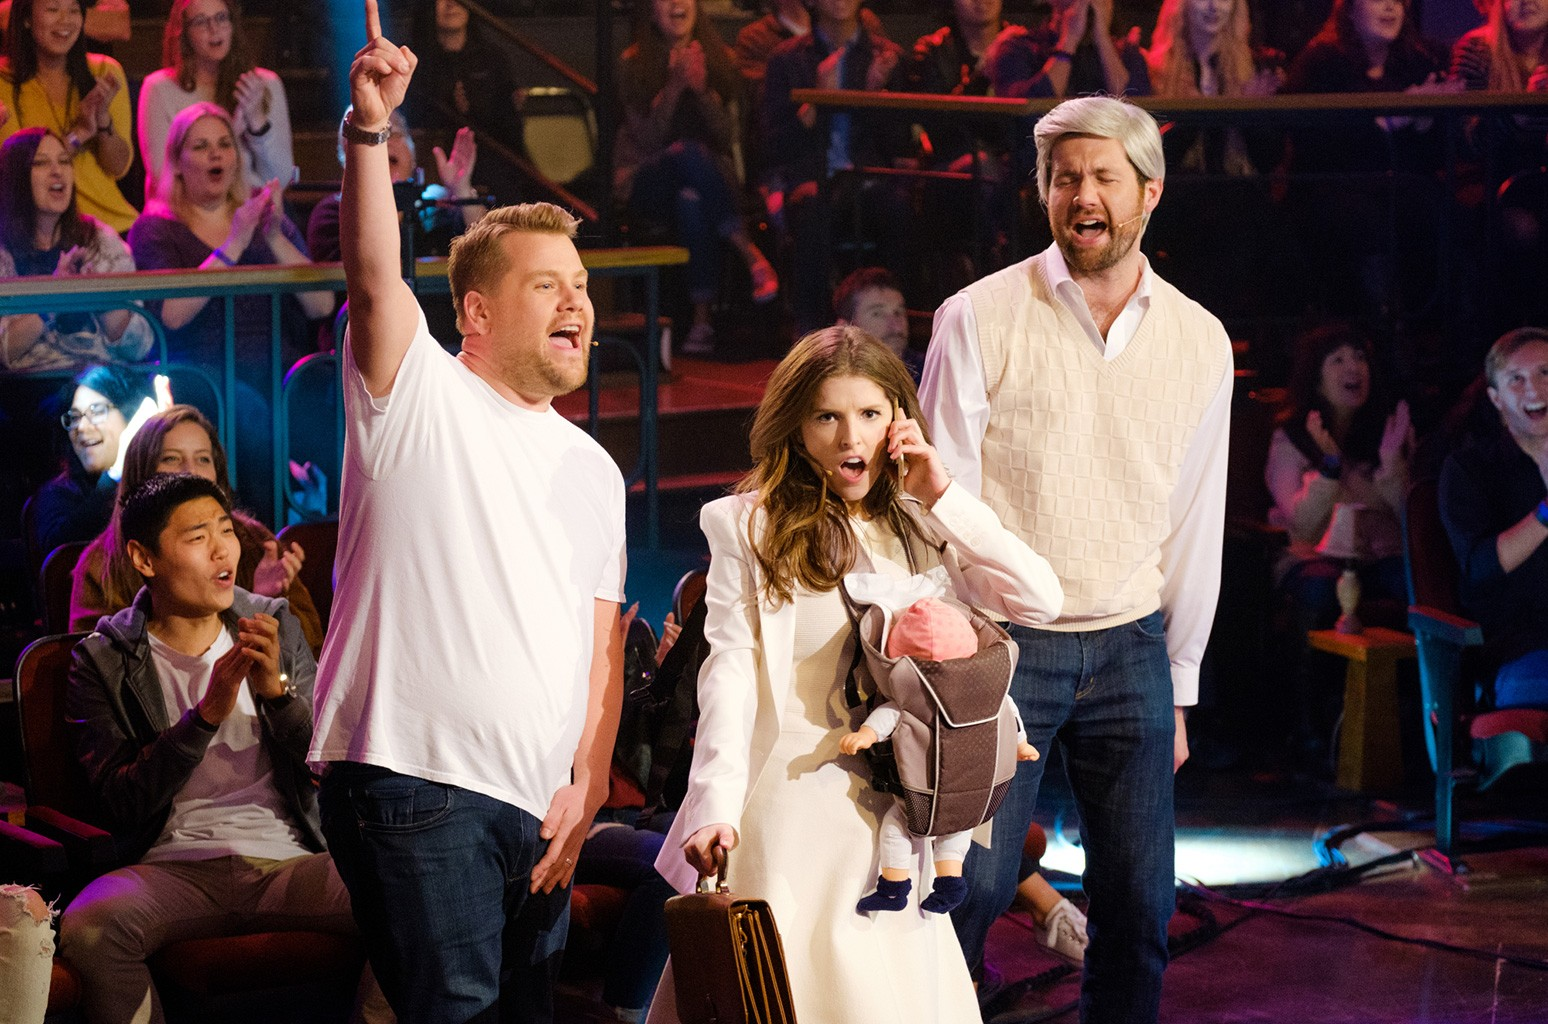 Anna Kendrick and Billy Eichner performs with James Corden during The Late Late Show with James Corden on Nov. 21, 2016.